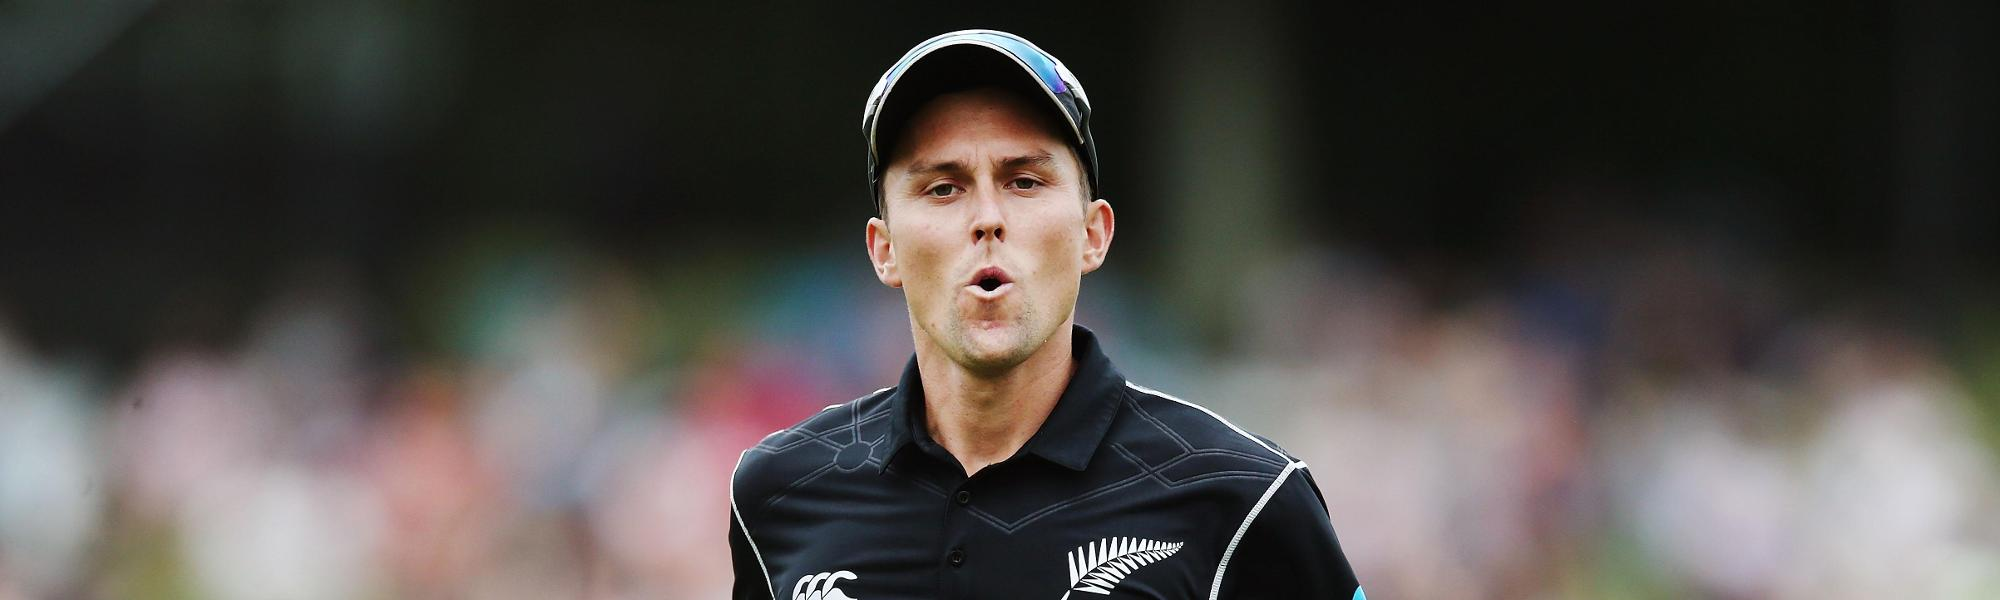 Trent Boult played in the first four ODIs against Pakistan